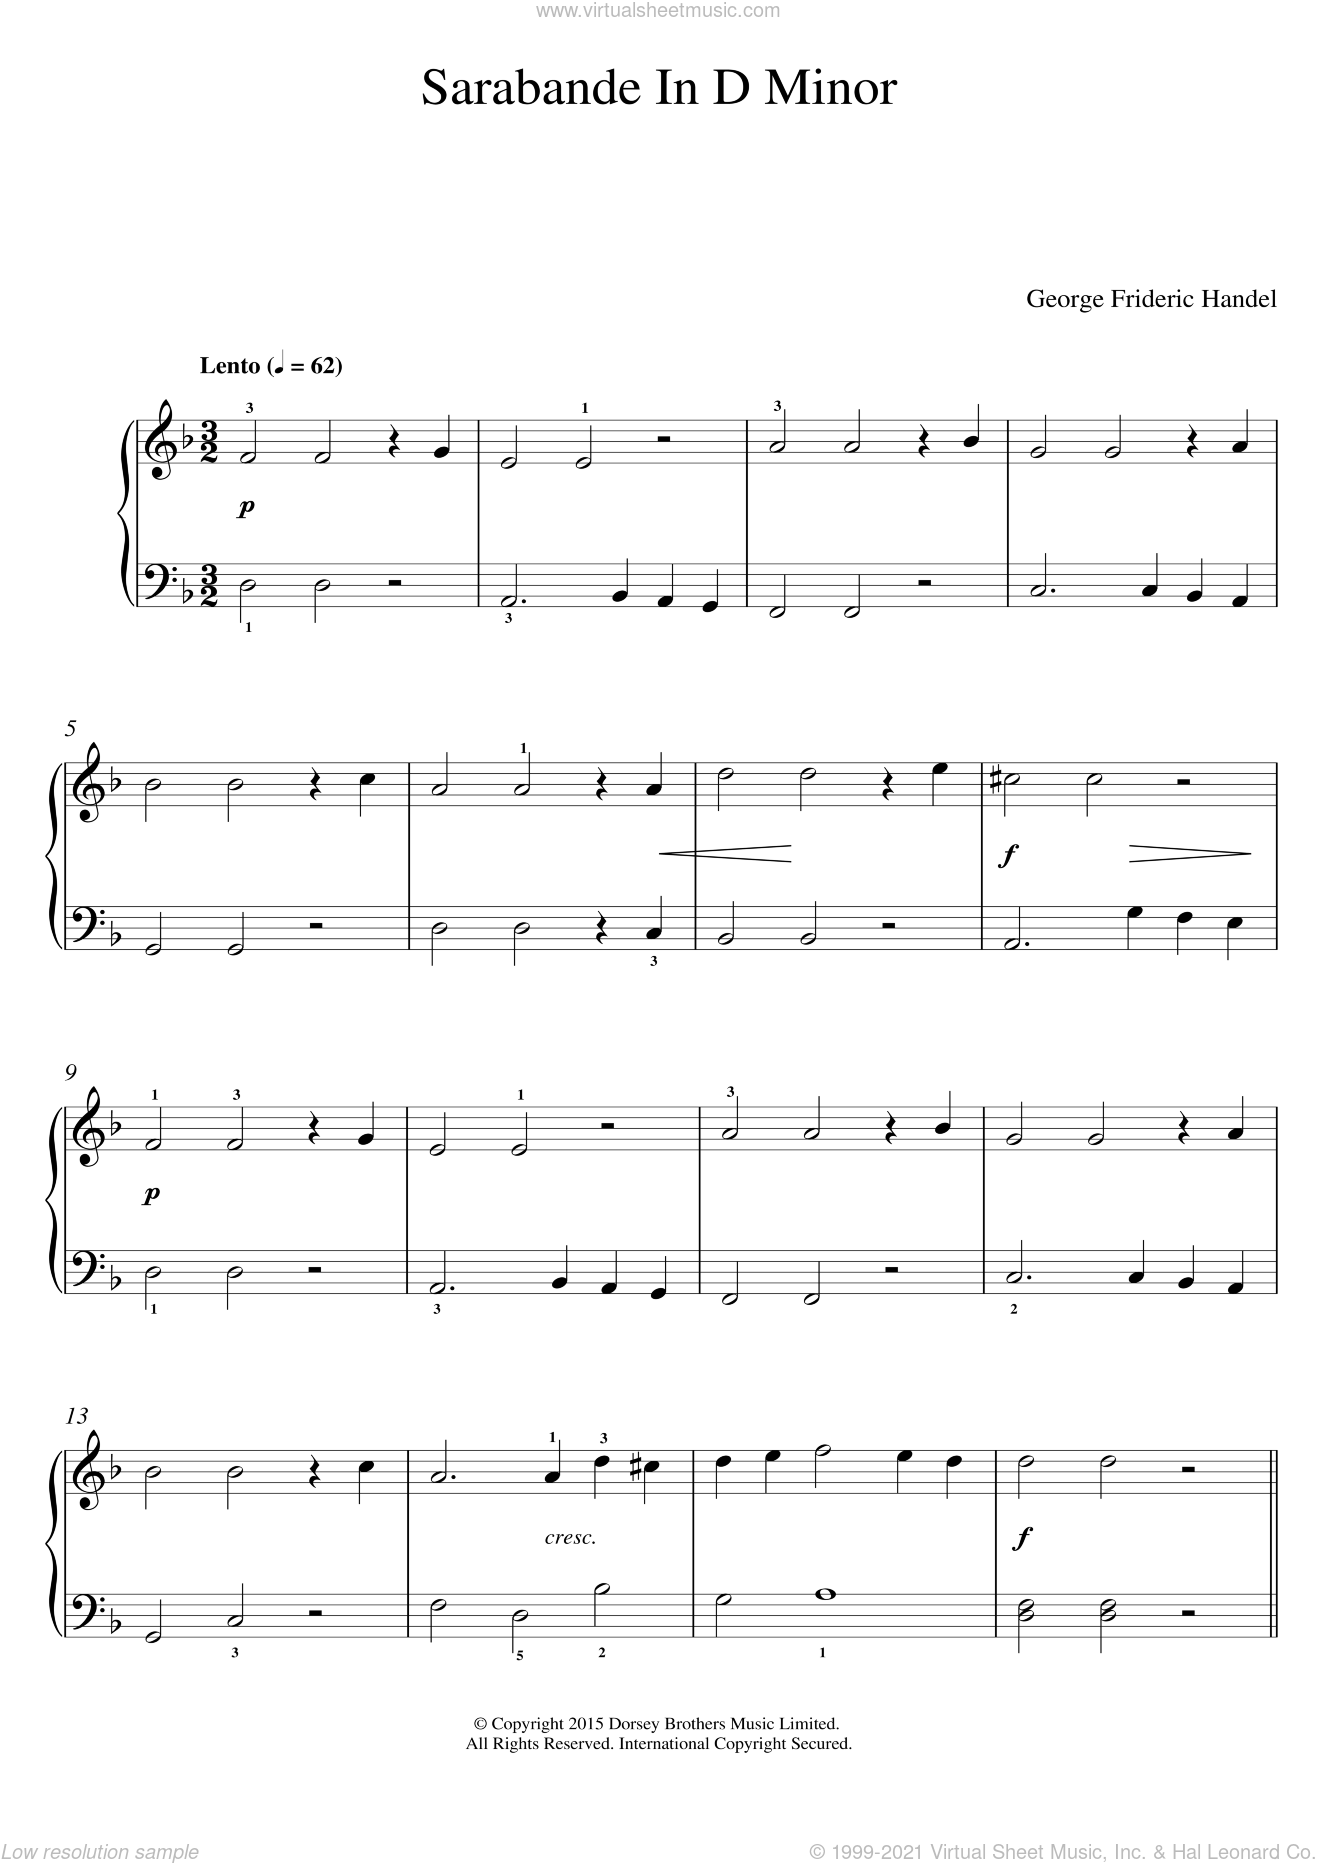 Sarabande (from Harpsichord Suite in D Minor) sheet music for voice, piano or guitar by George Frideric Handel, classical score, intermediate skill level